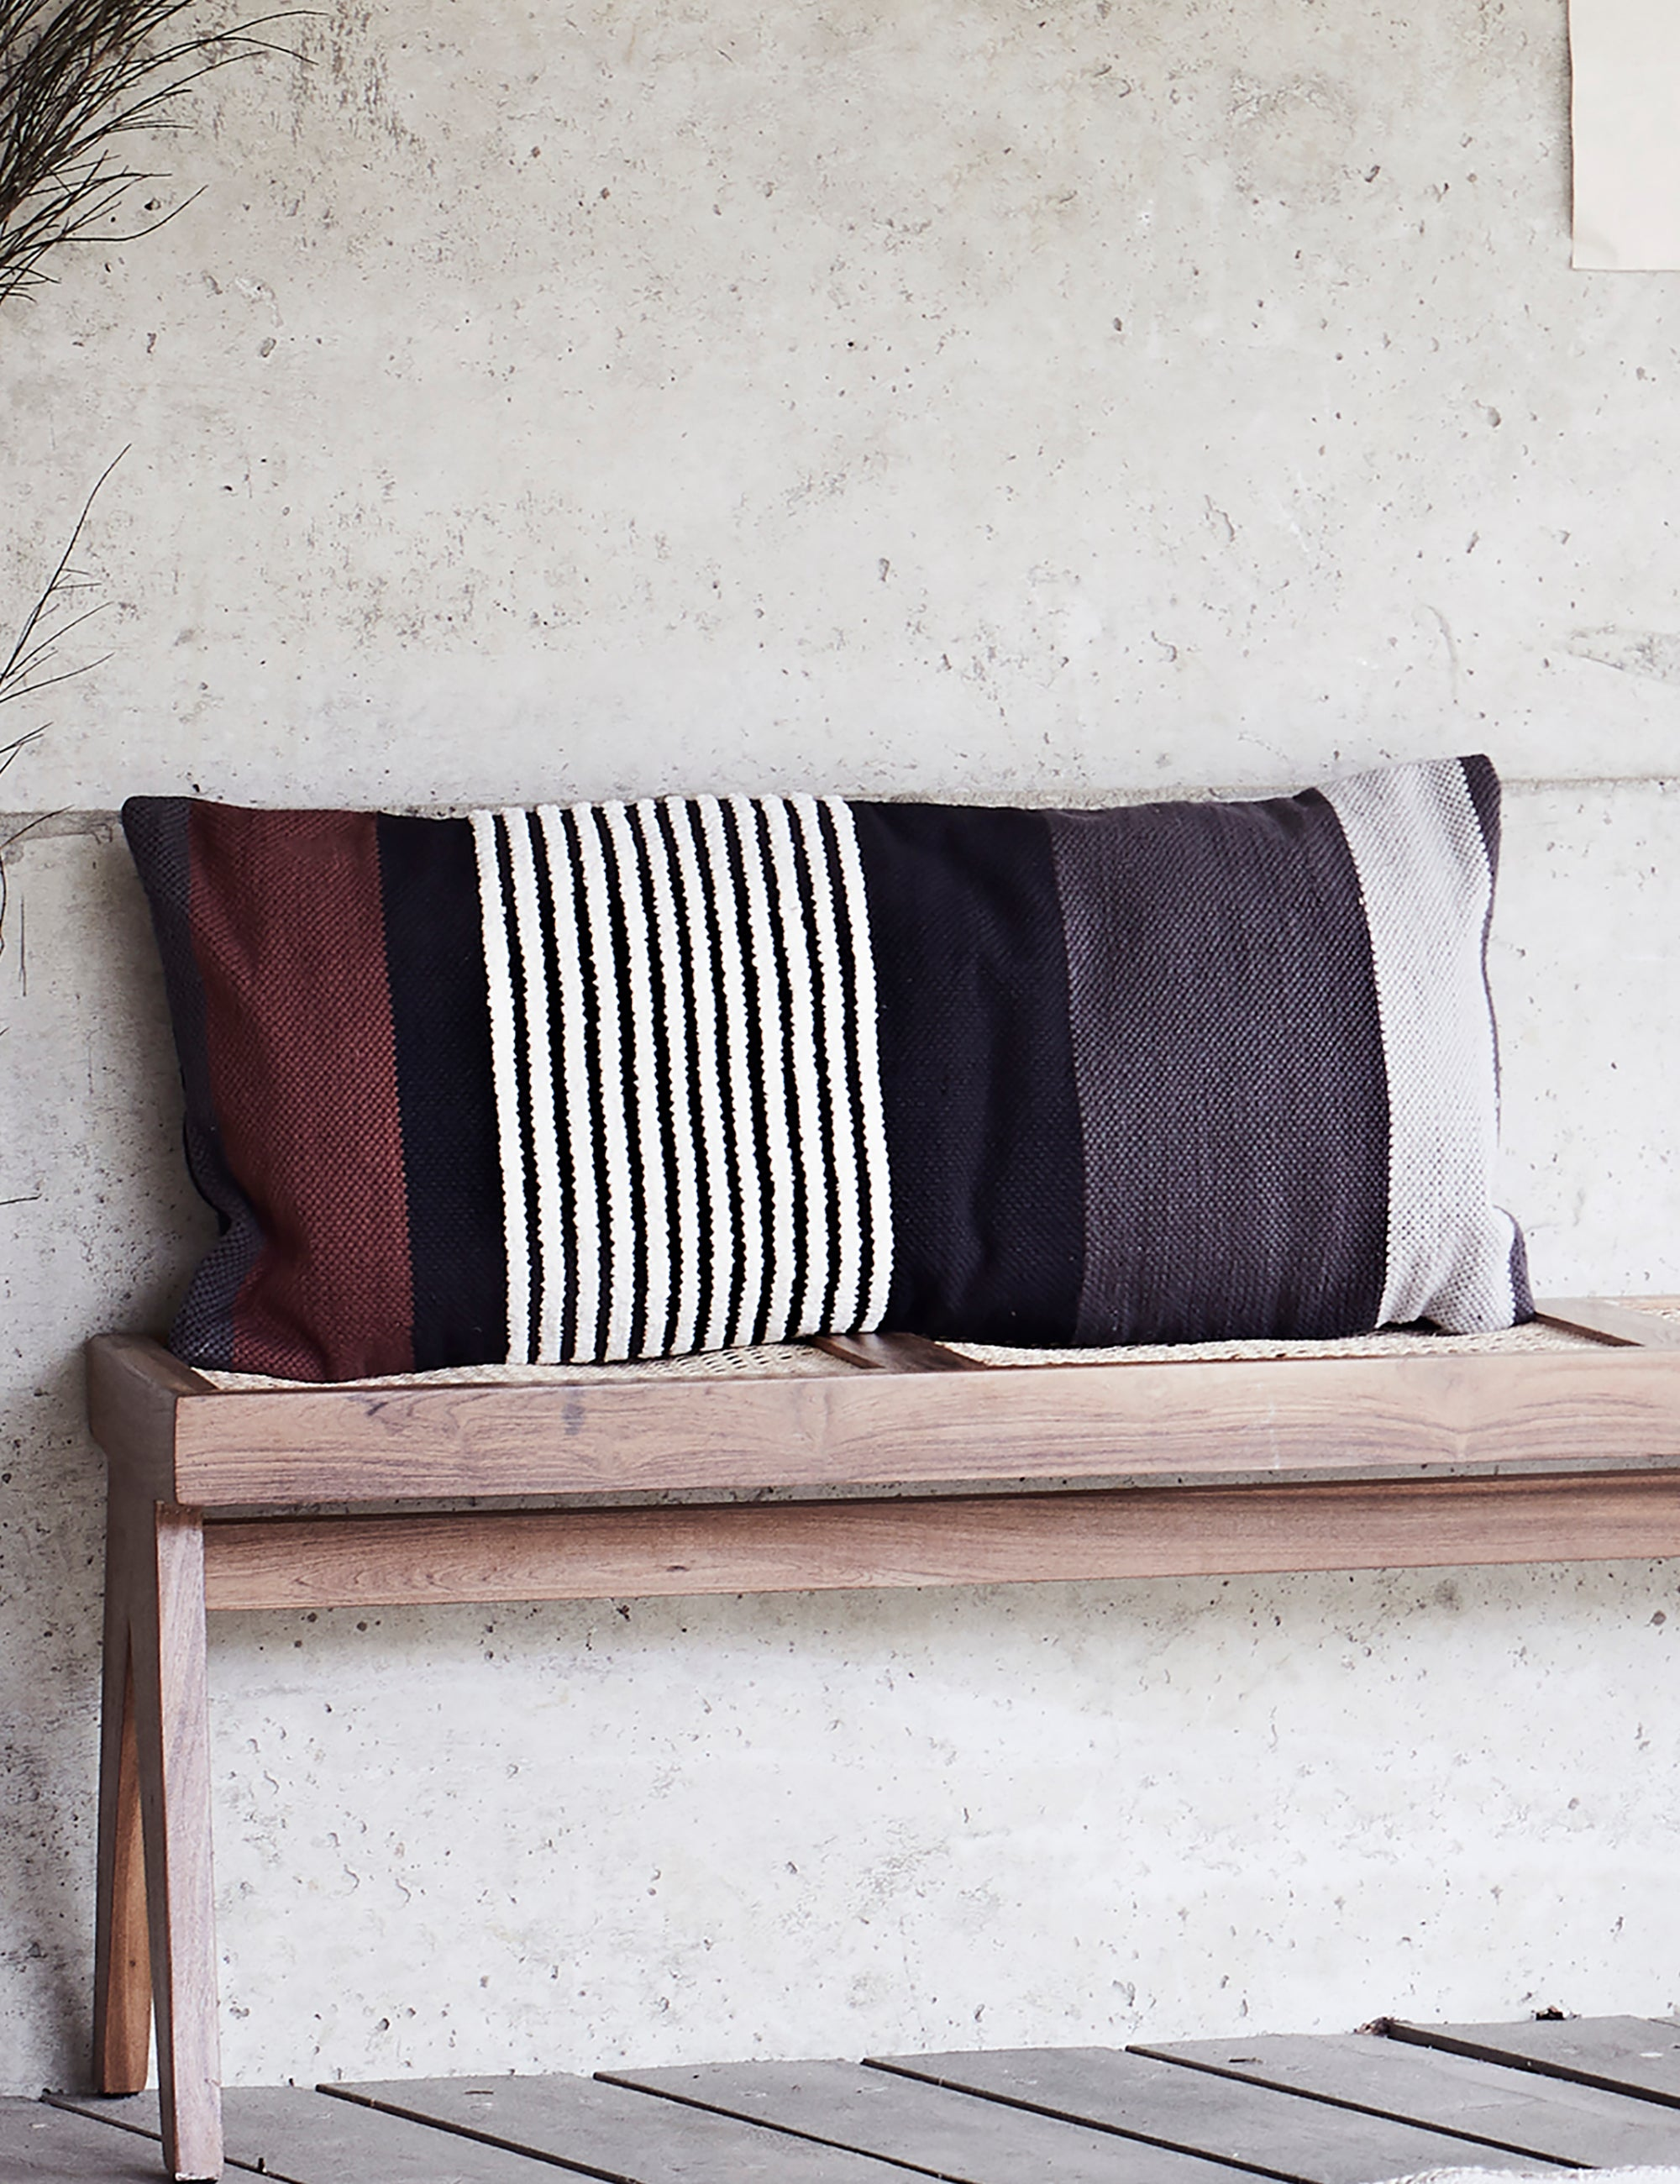 Burgundy & Black Striped Cushion